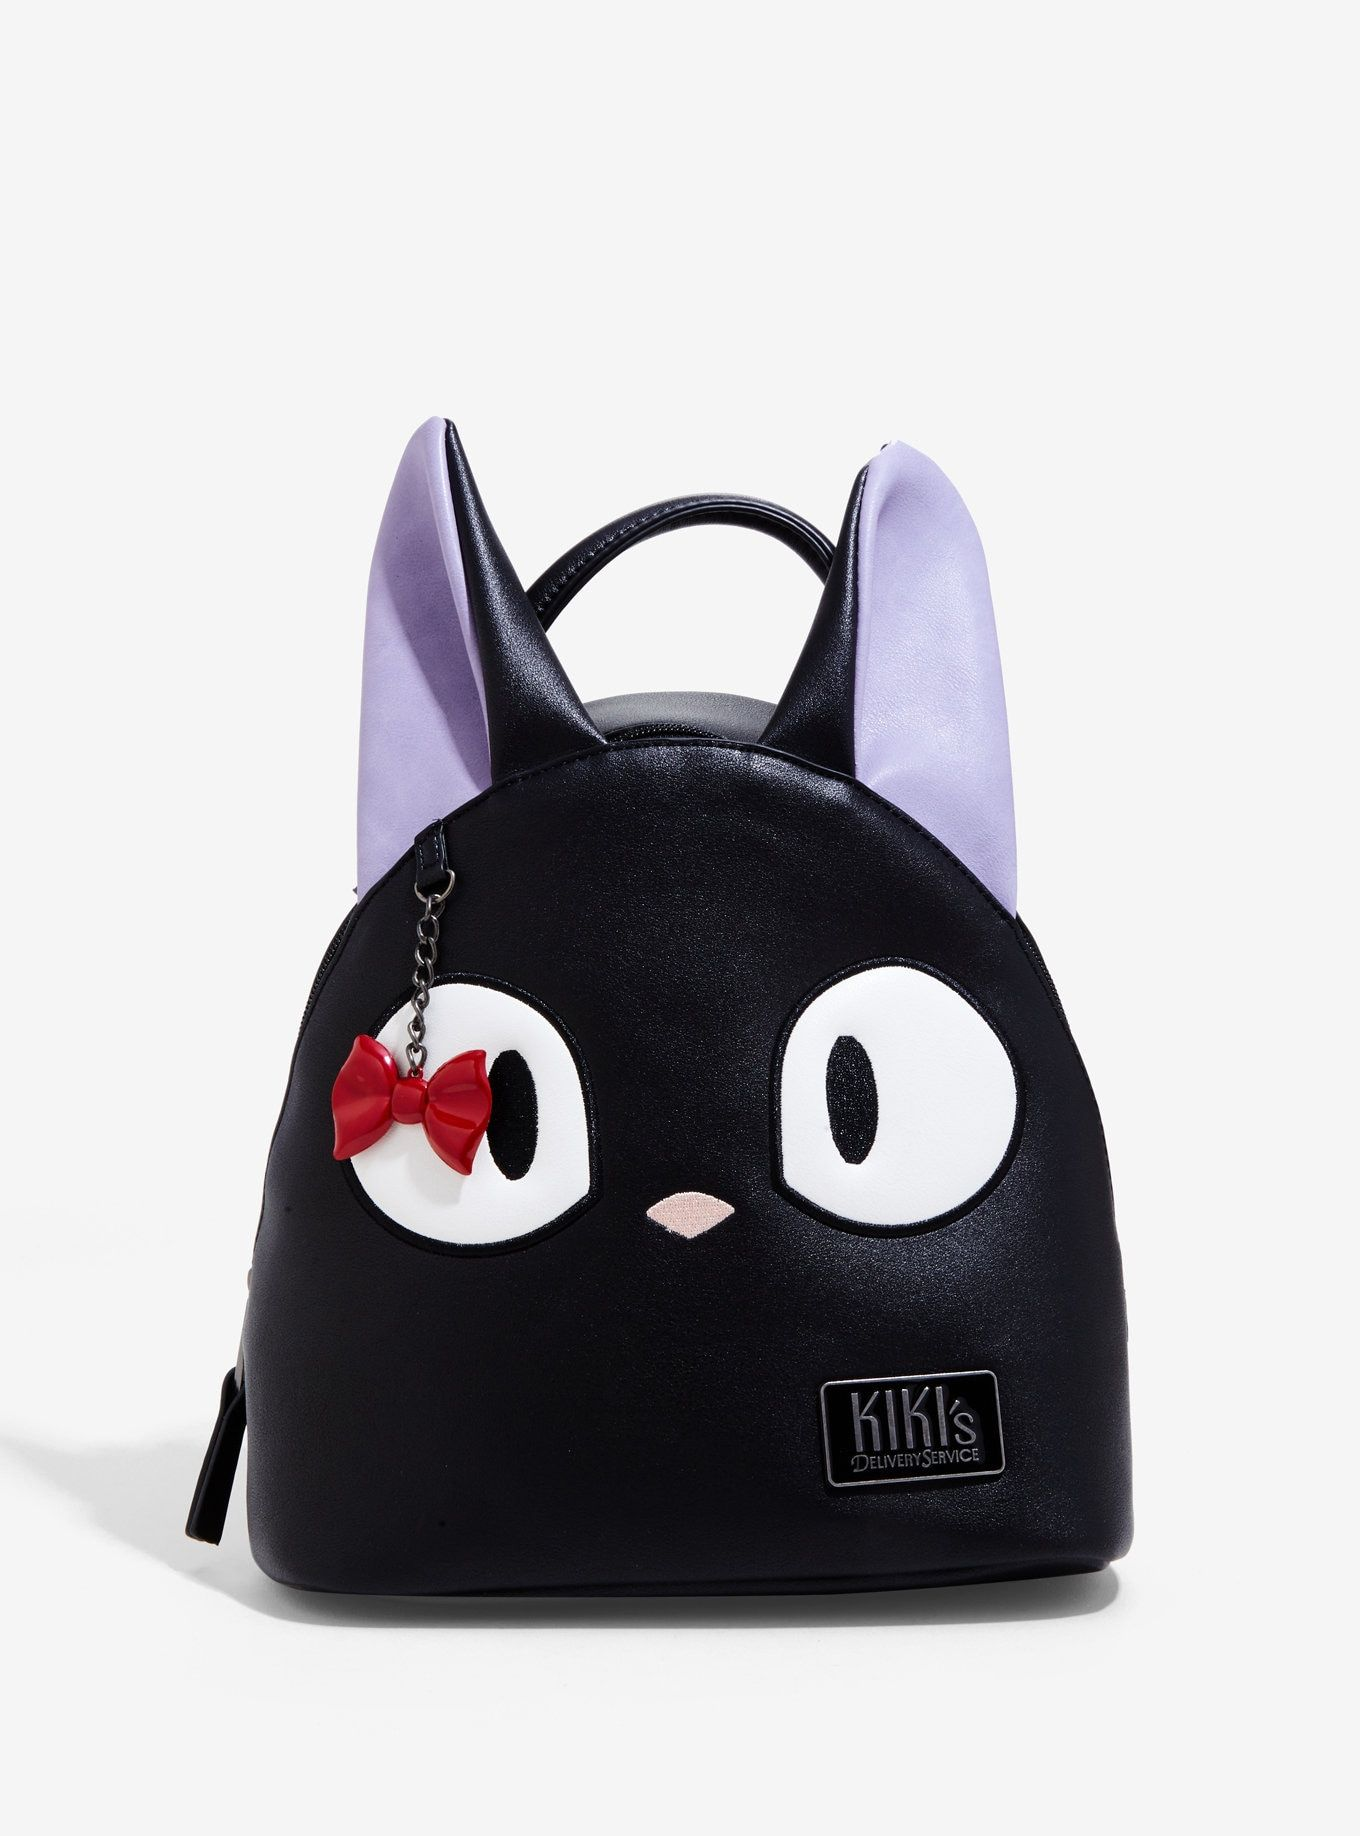 369d2115b3 Studio Ghibli Kiki s Delivery Service Jiji Mini Backpack